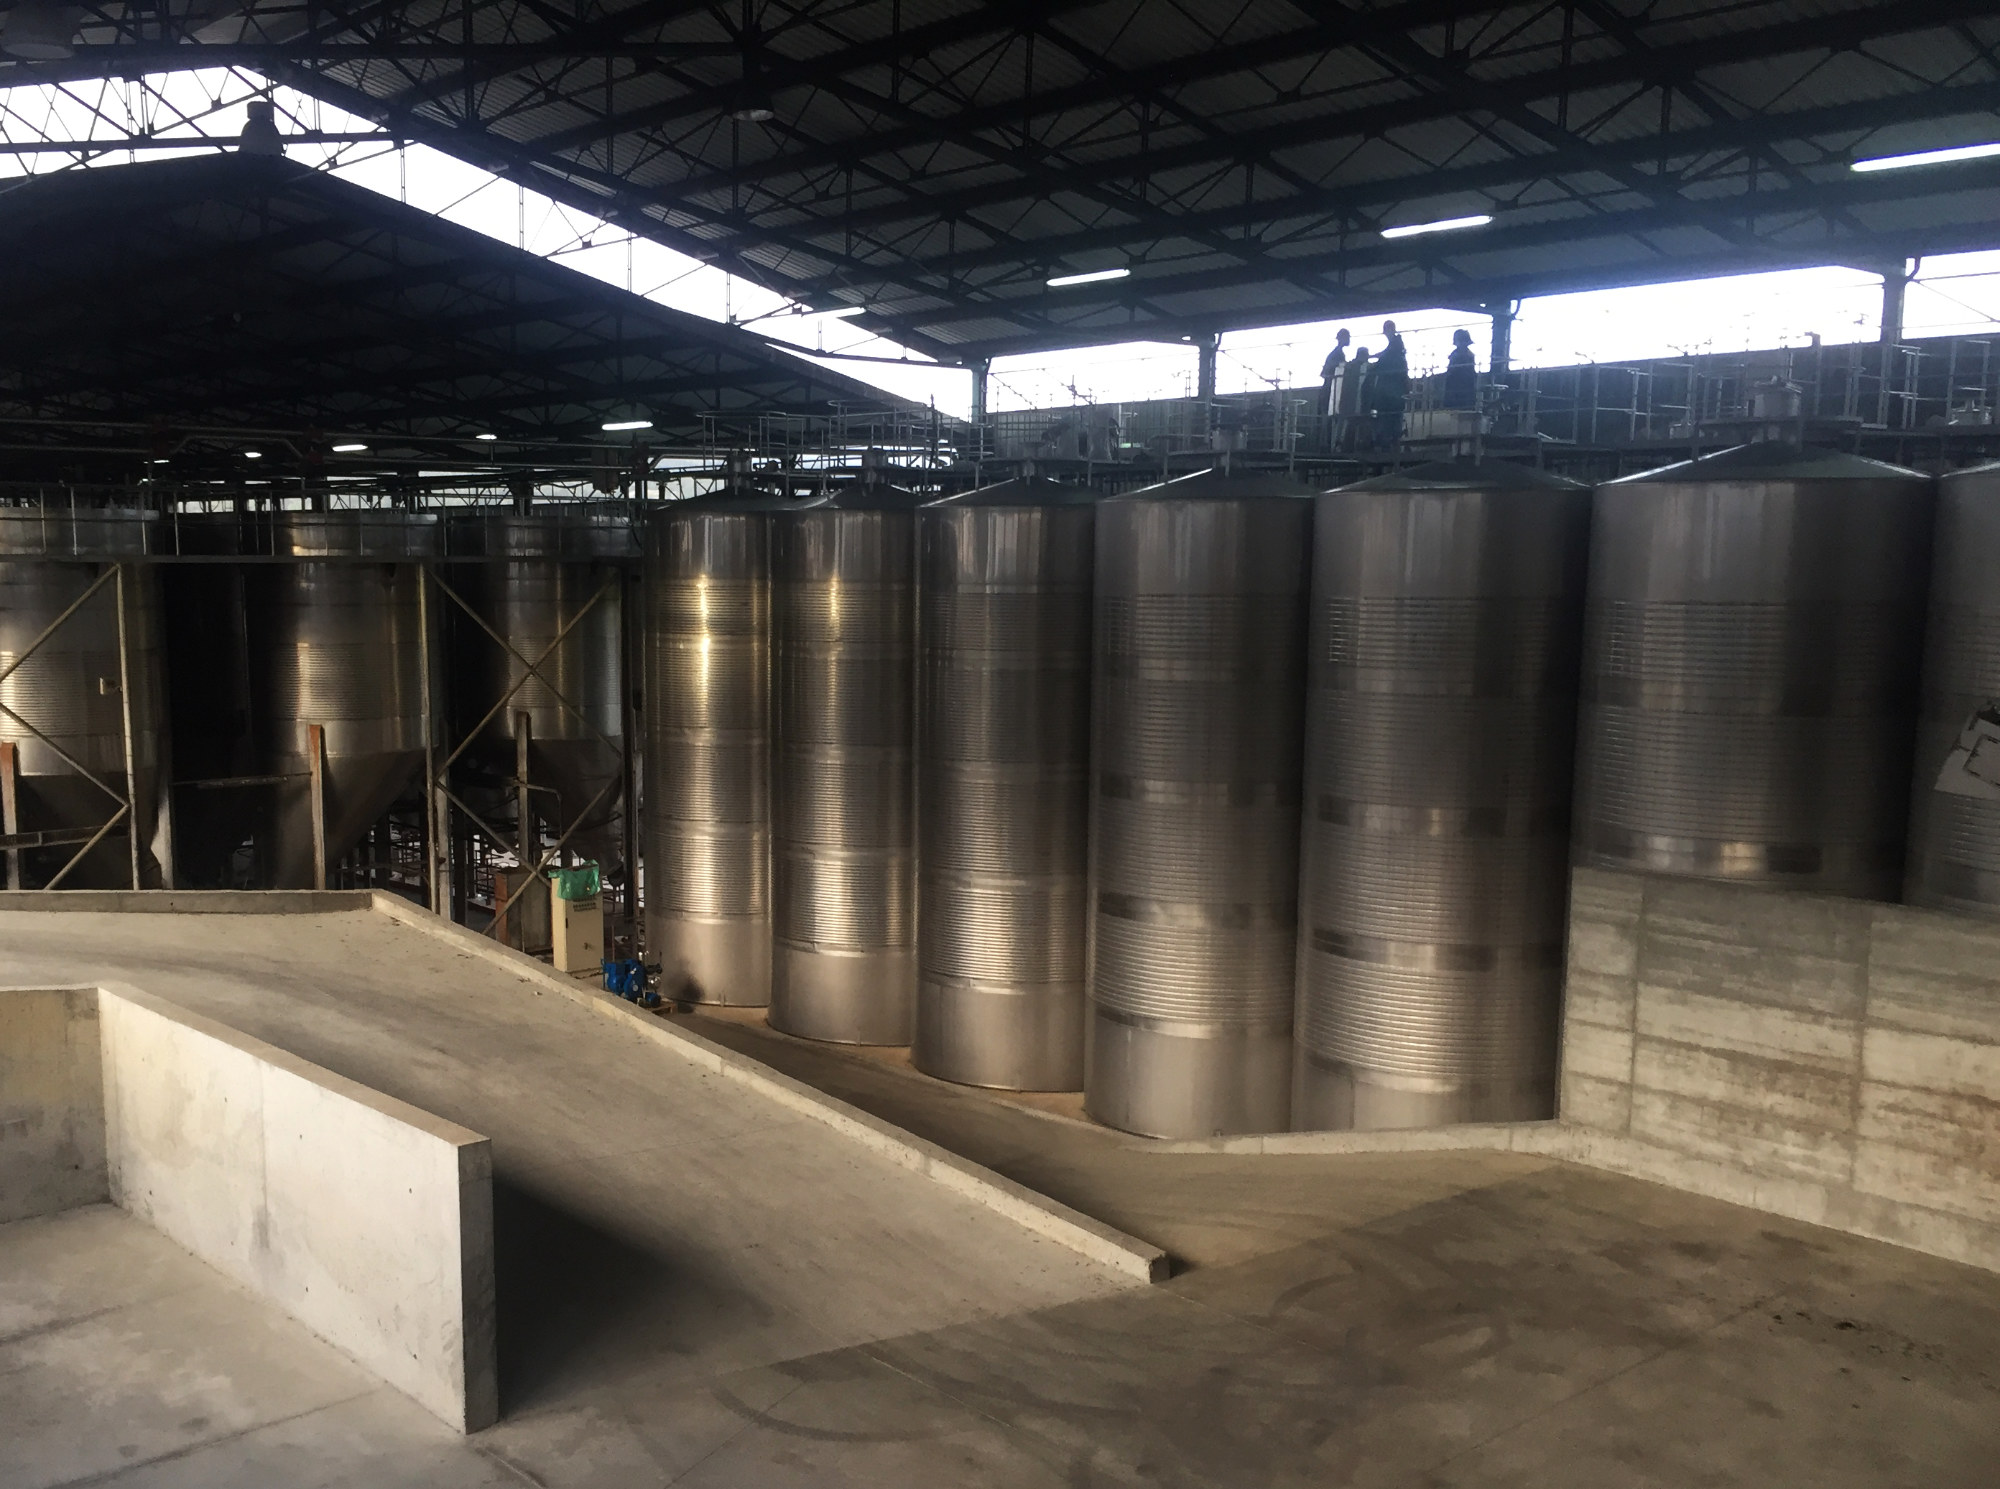 Storage chambers for wine